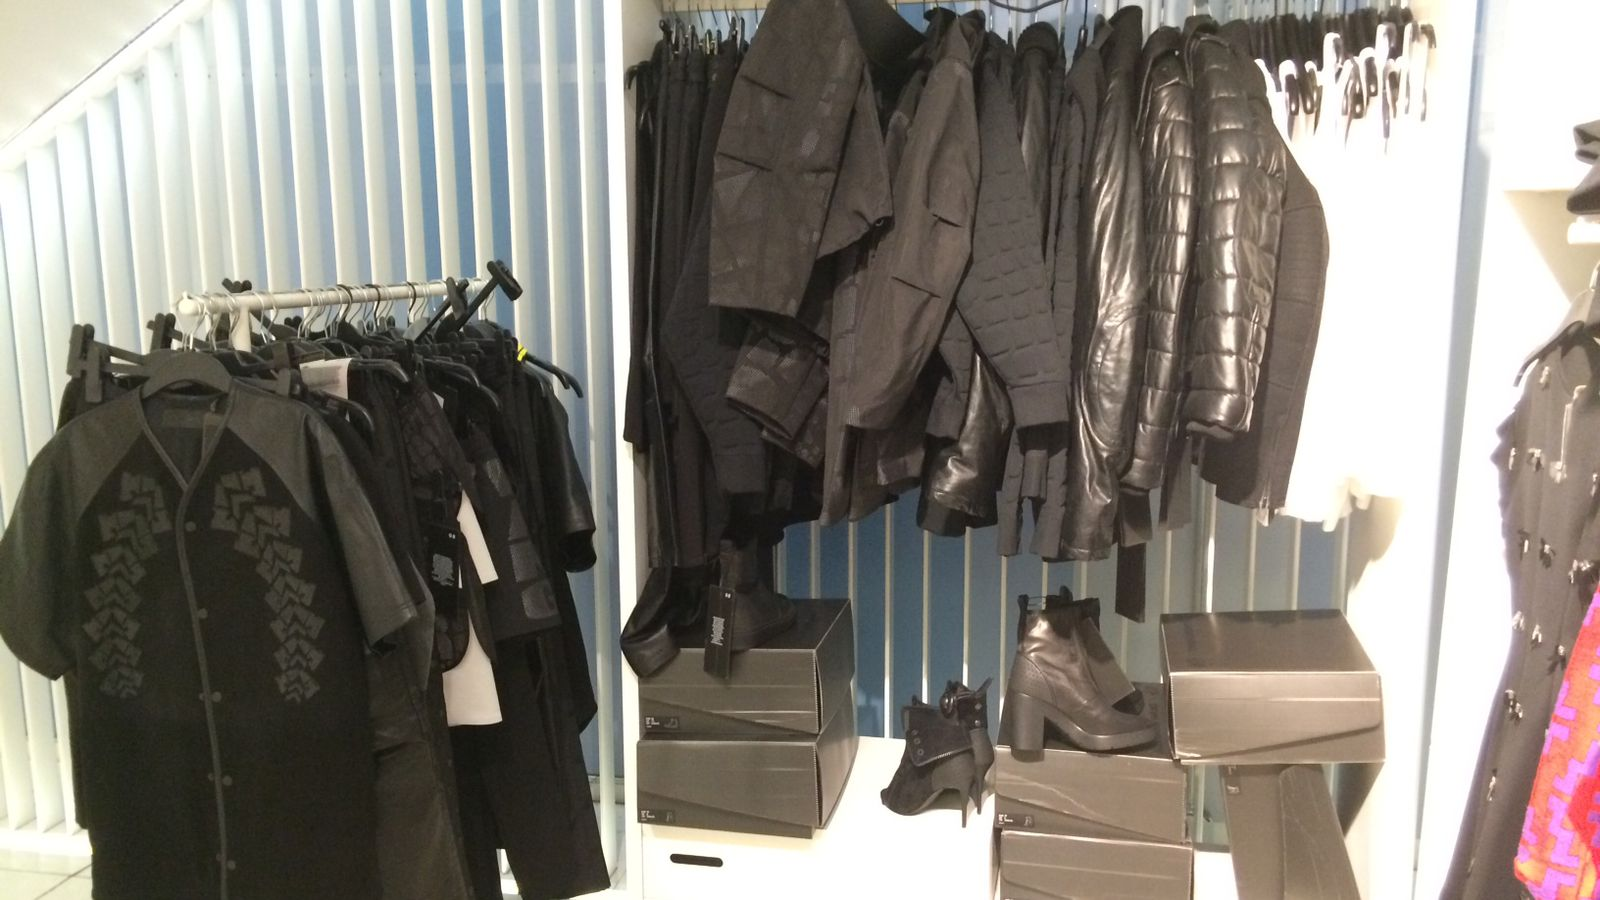 H&m Soho | H&m Portland | Necessary Clothing Soho